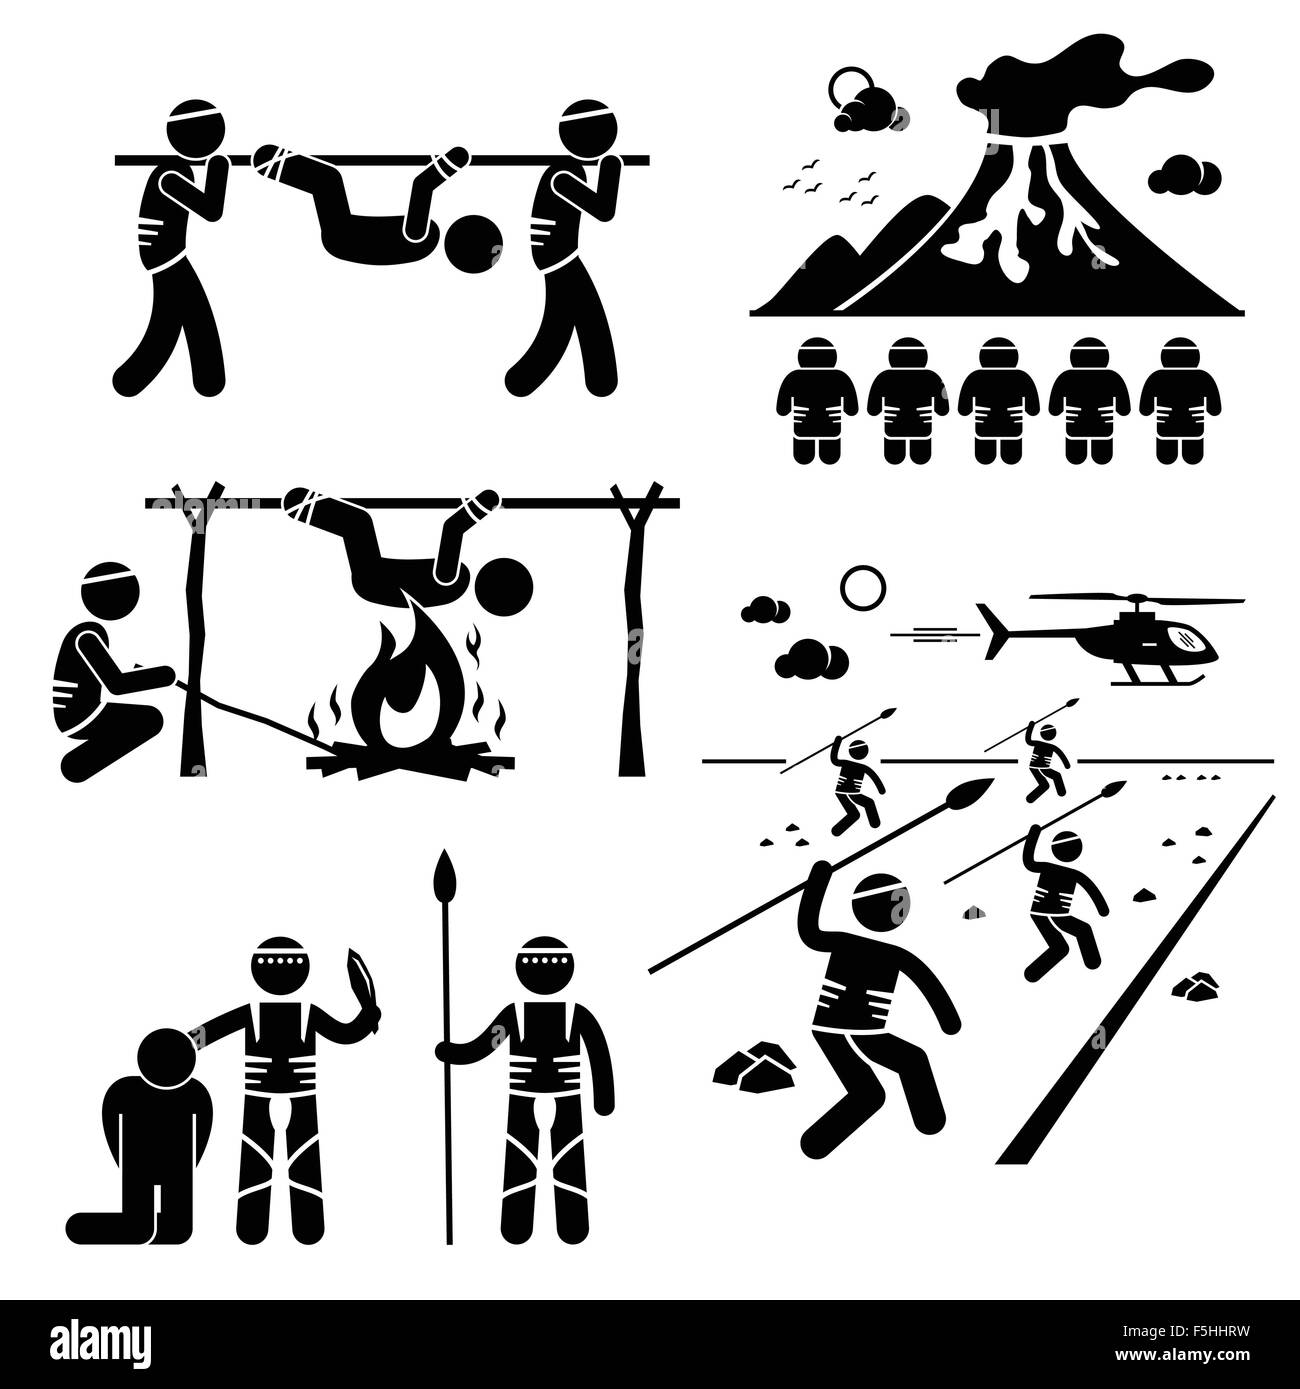 Lost Civilization Cannibal Man Eating Tribe Stick Figure Pictogram Icons - Stock Image